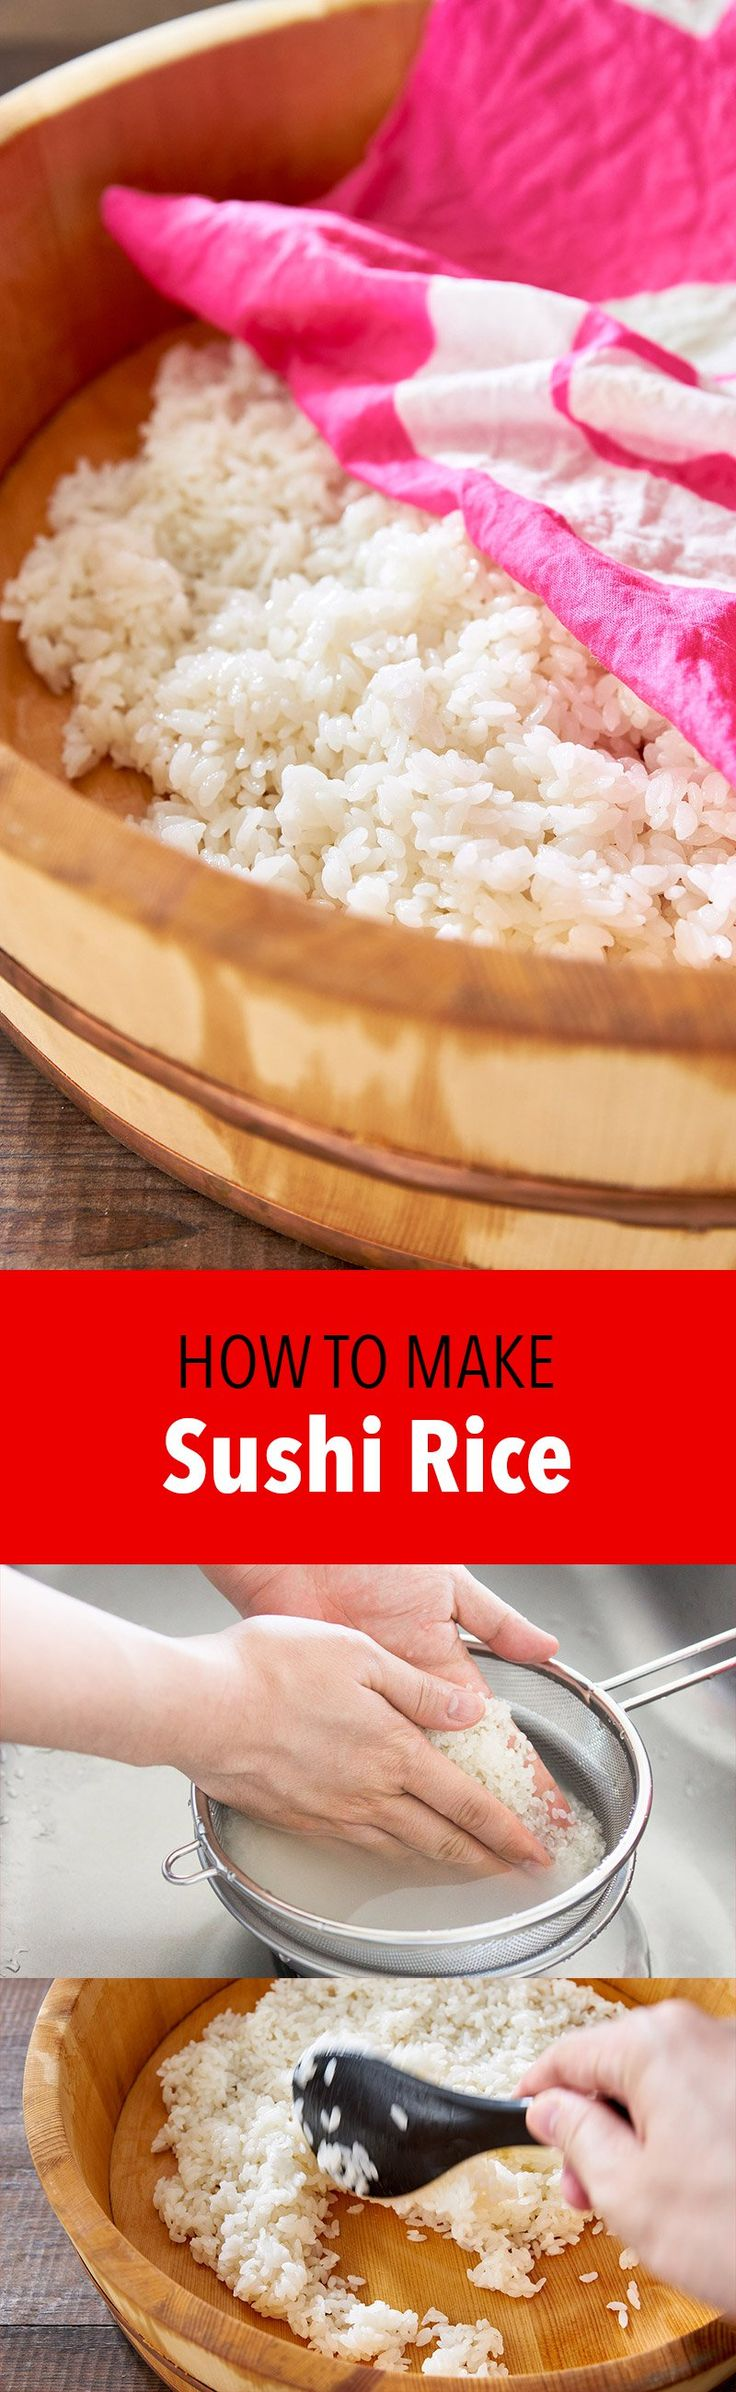 Master the art of making sushi rice with this easy tutorial. Learn my secrets for making the best authentic Japanese sushi rice from scratch.